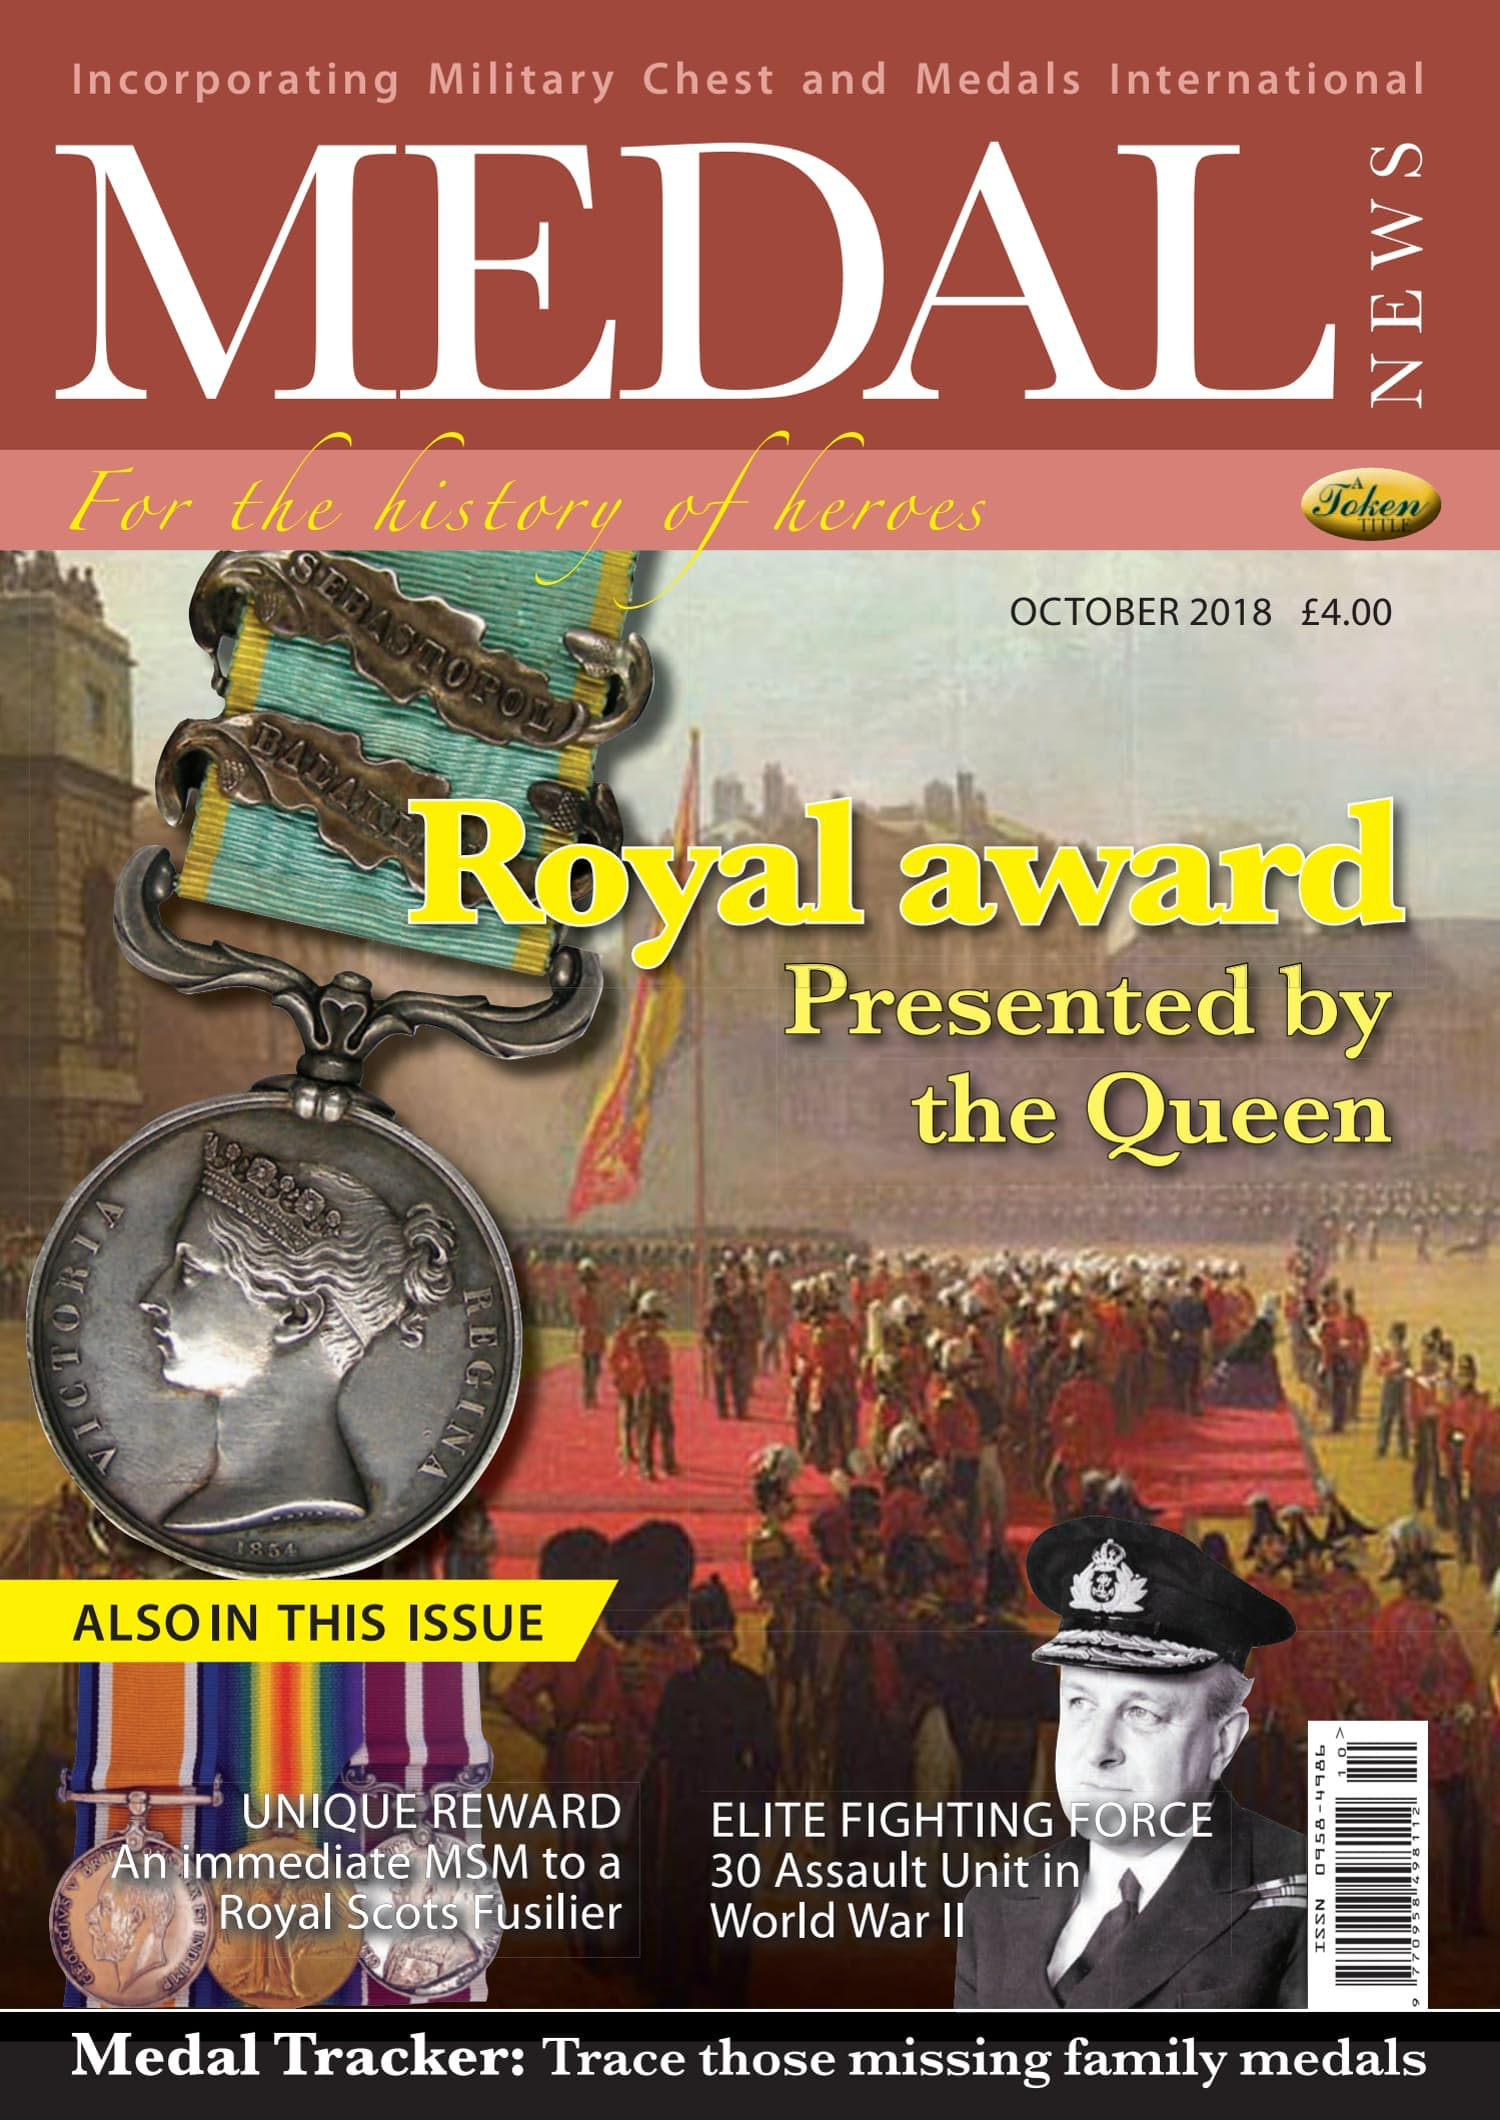 The front cover of Medal News, Volume 56, Number 9, October 2018